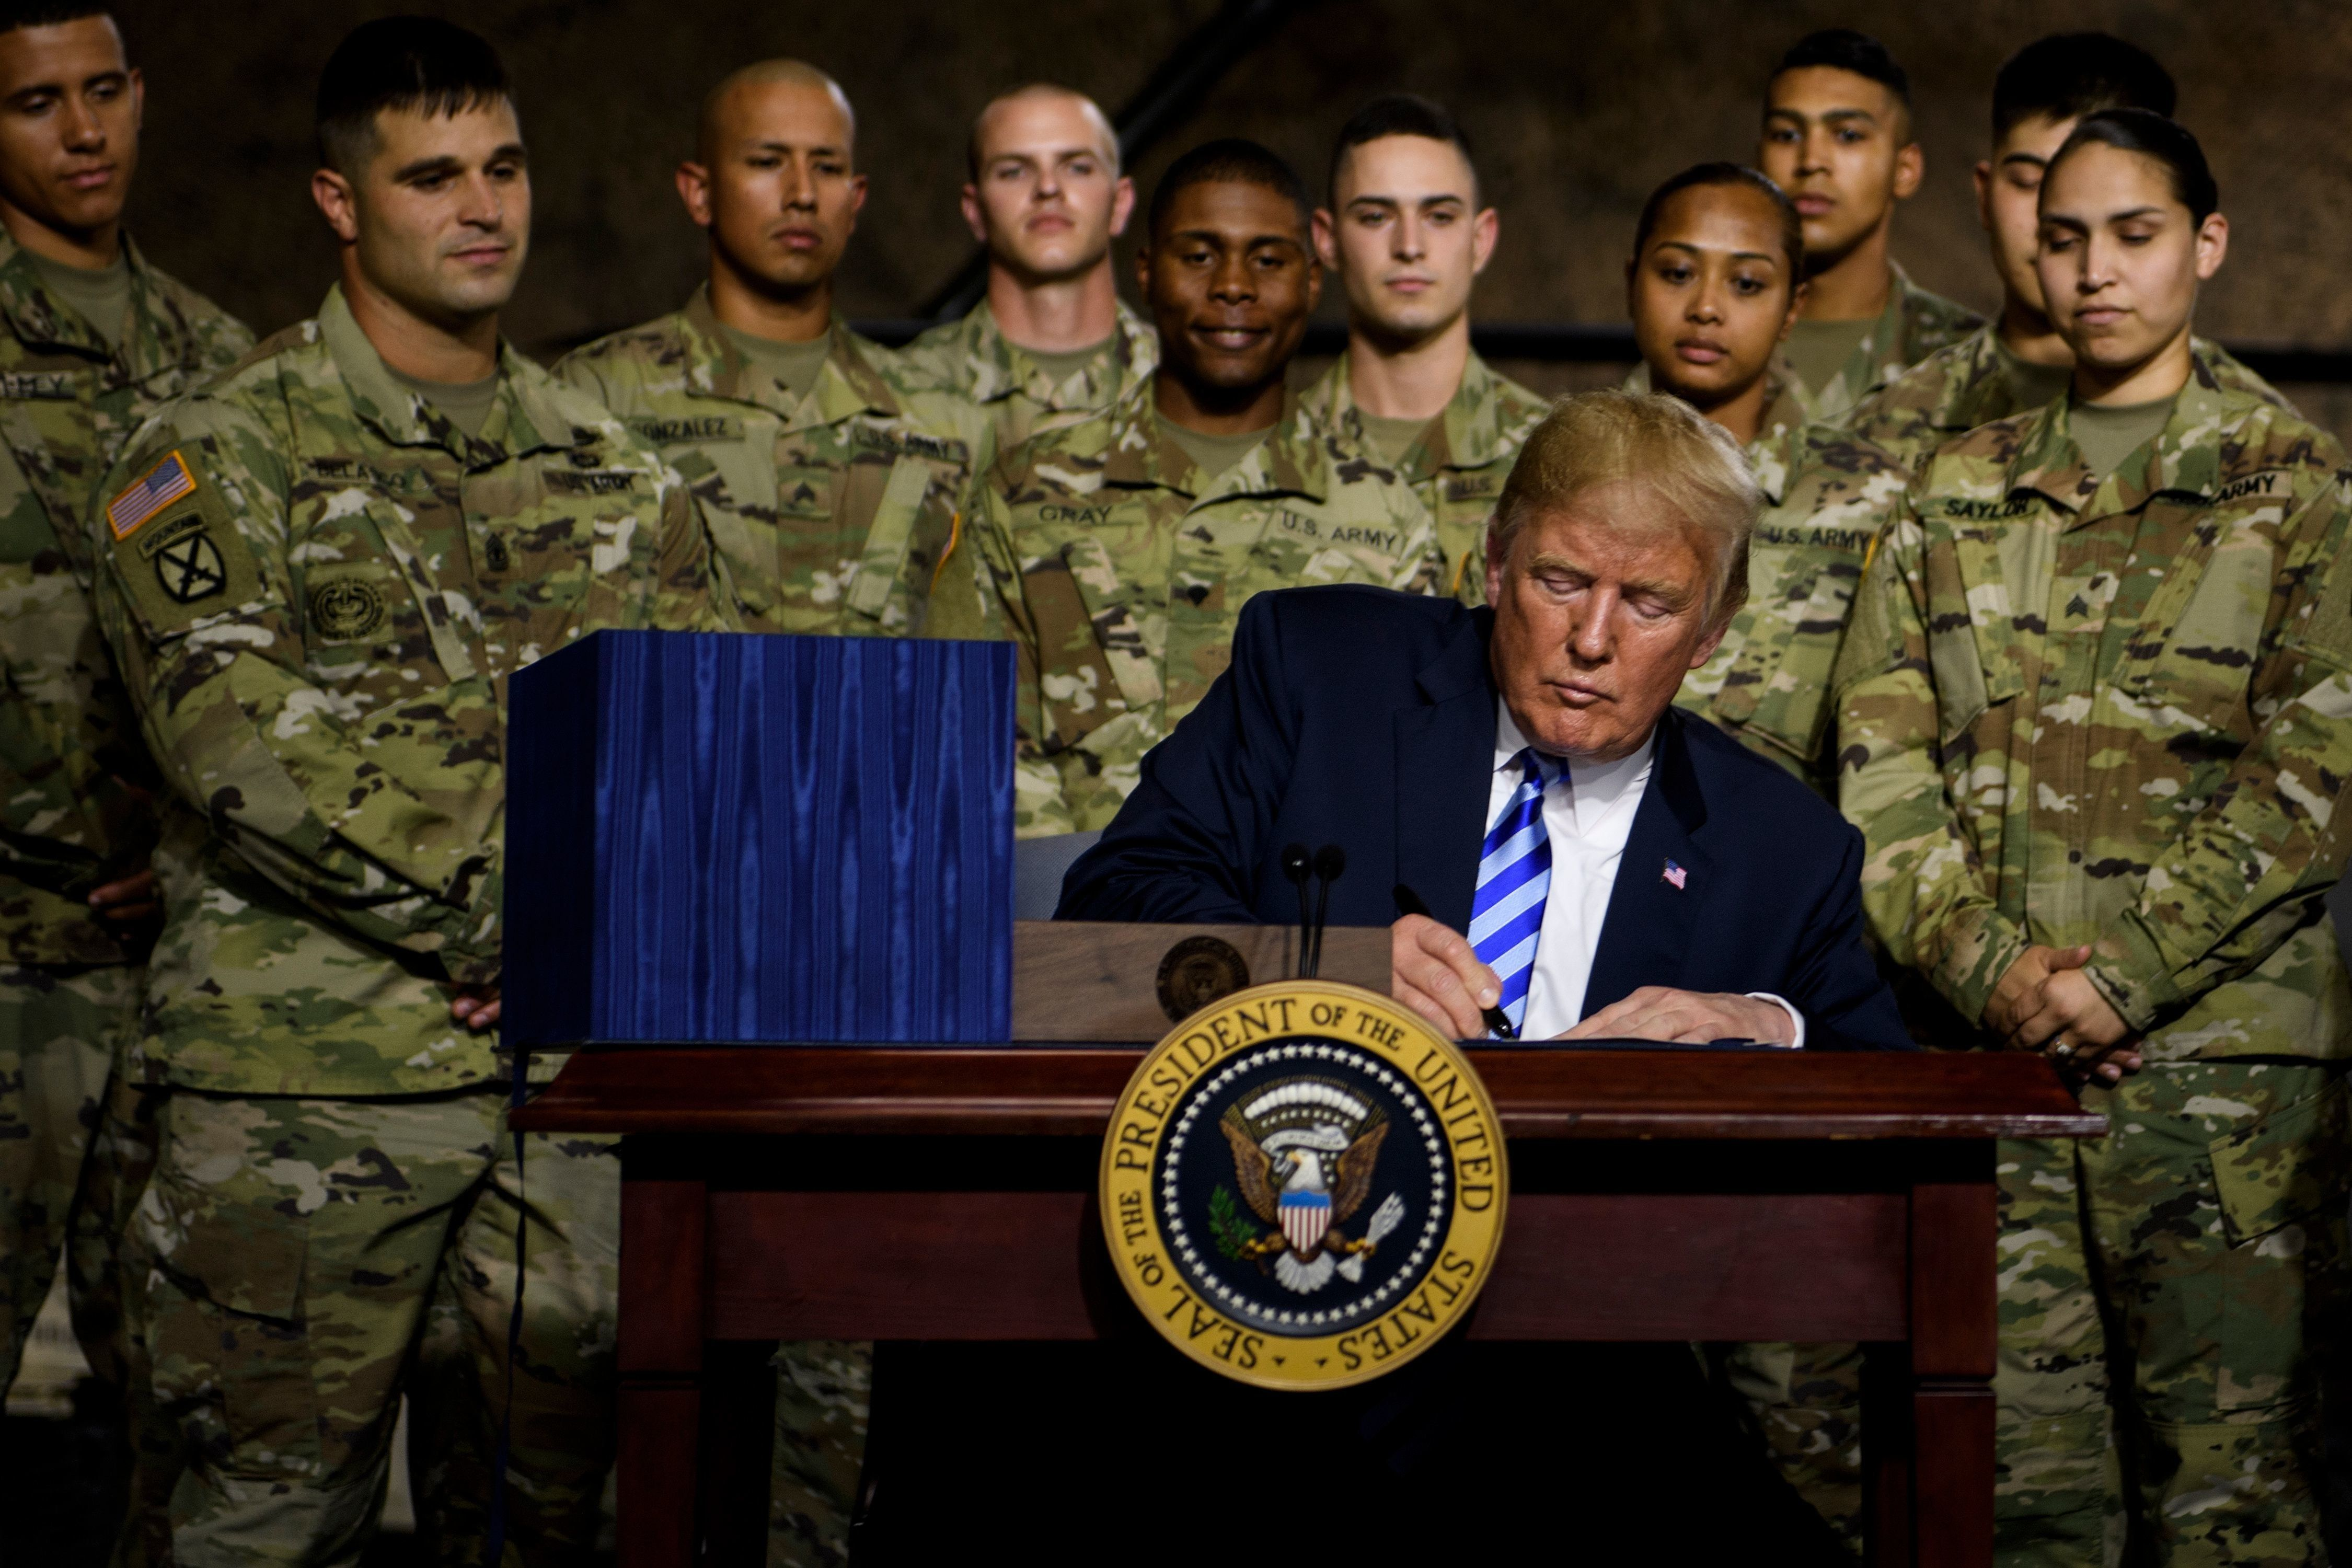 Trumps Military Parade Postponed Indefinitely Amid Reports Of Overspending